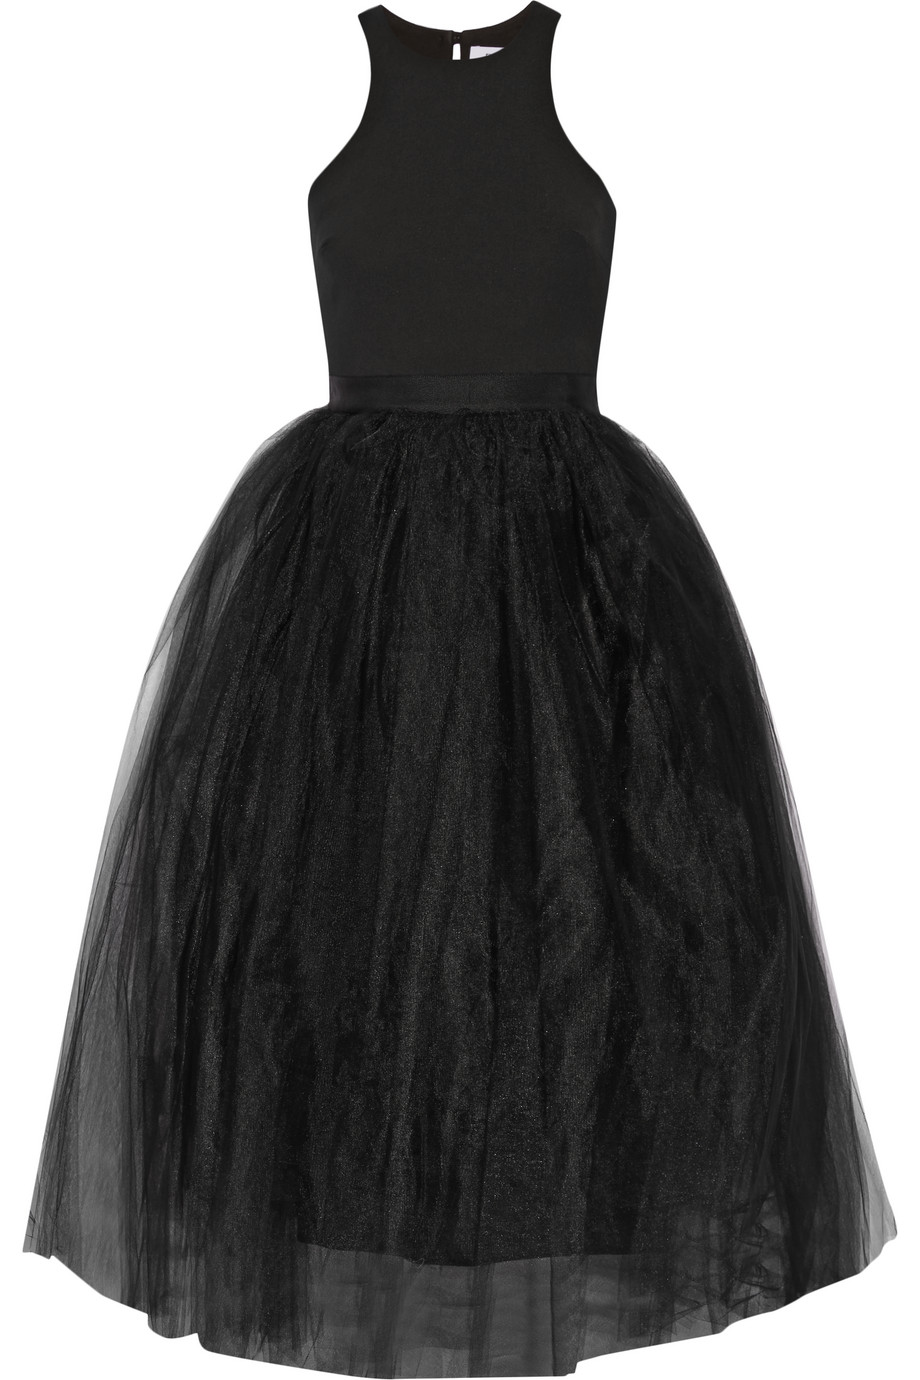 Elizabeth and James Aneko Stretch-Ponte and Tulle Midi Dress, Black, Women's, Size: 4